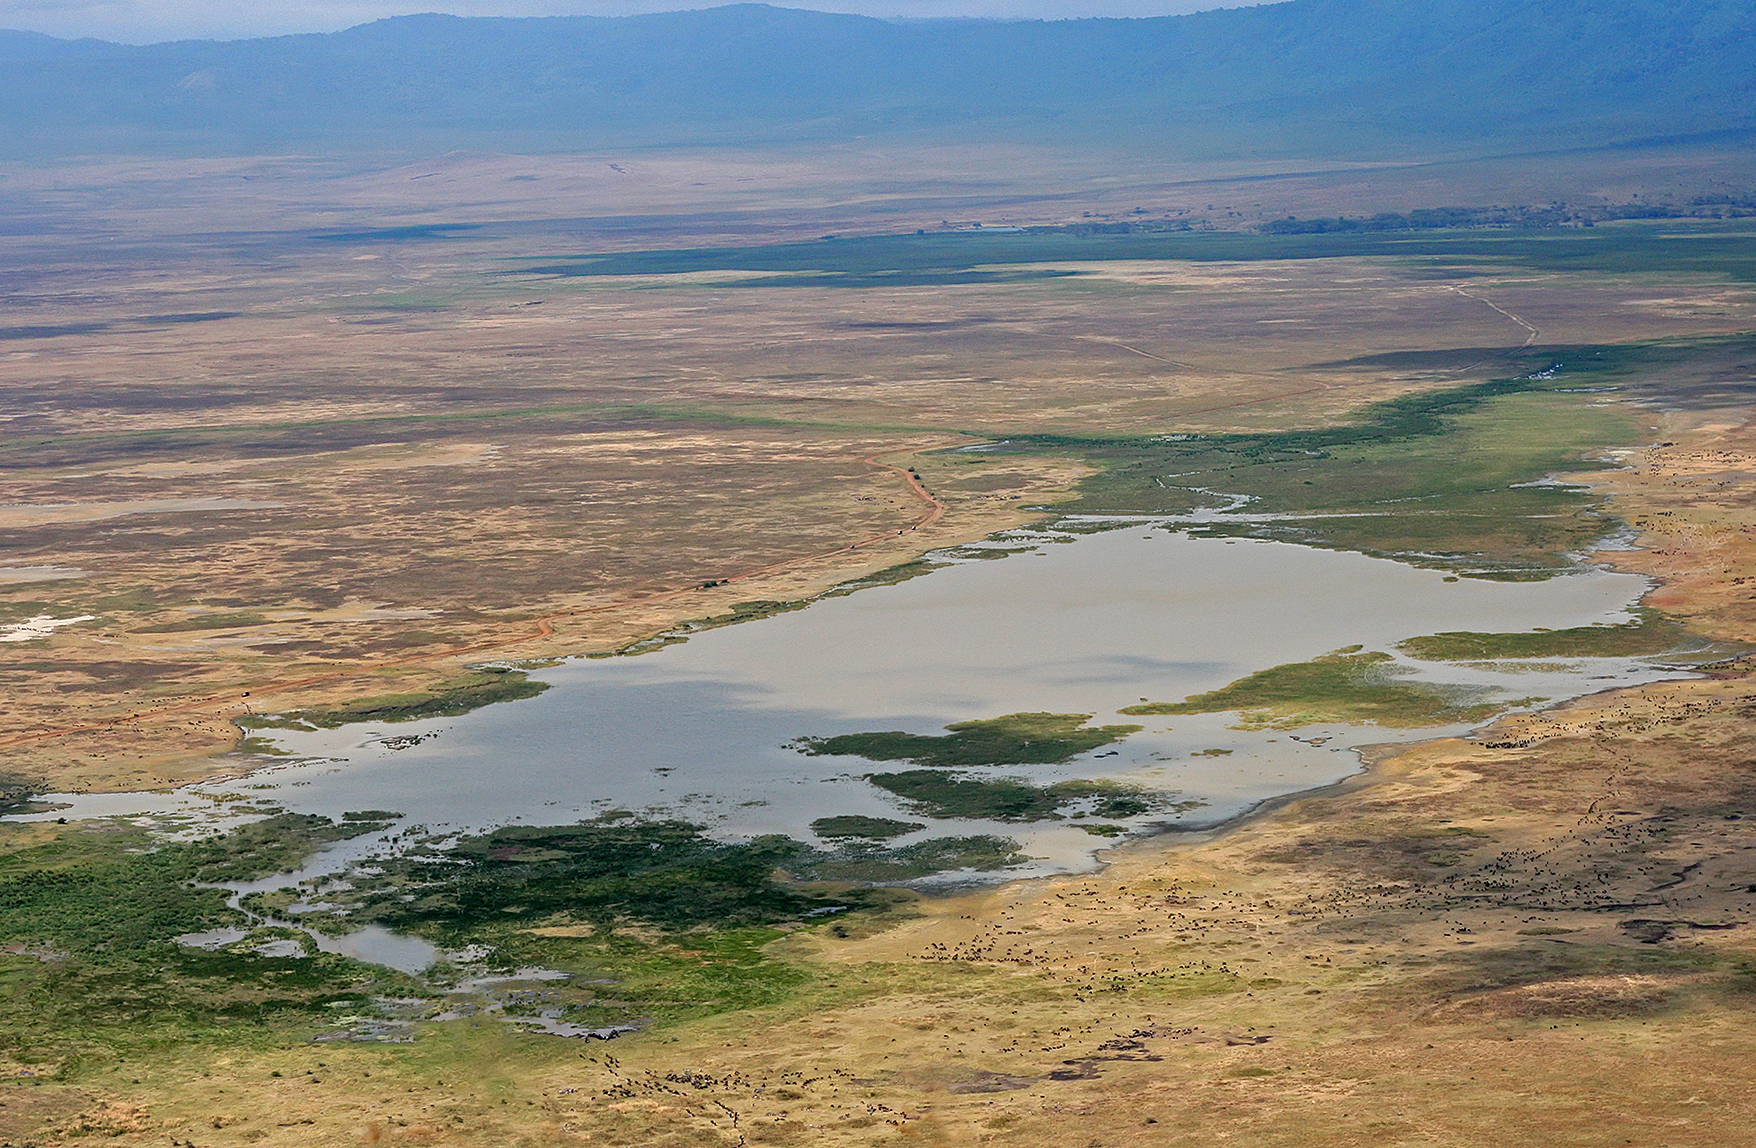 http://upload.wikimedia.org/wikipedia/commons/4/4b/Ngorongoro_Crater_Overview.jpg